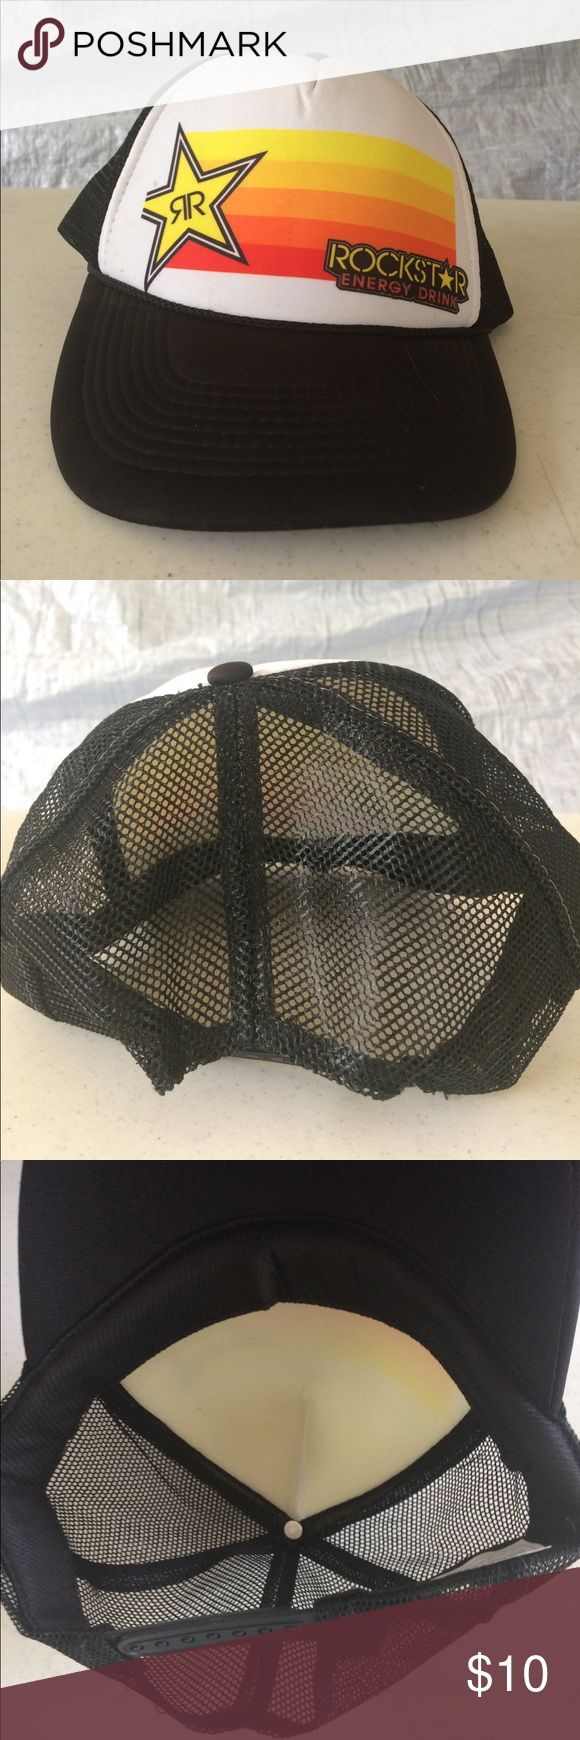 Rockstar energy drink mesh cap Good shape. Does not look like it was ever worn. Small spot (see pic) Rockstar Accessories Hats